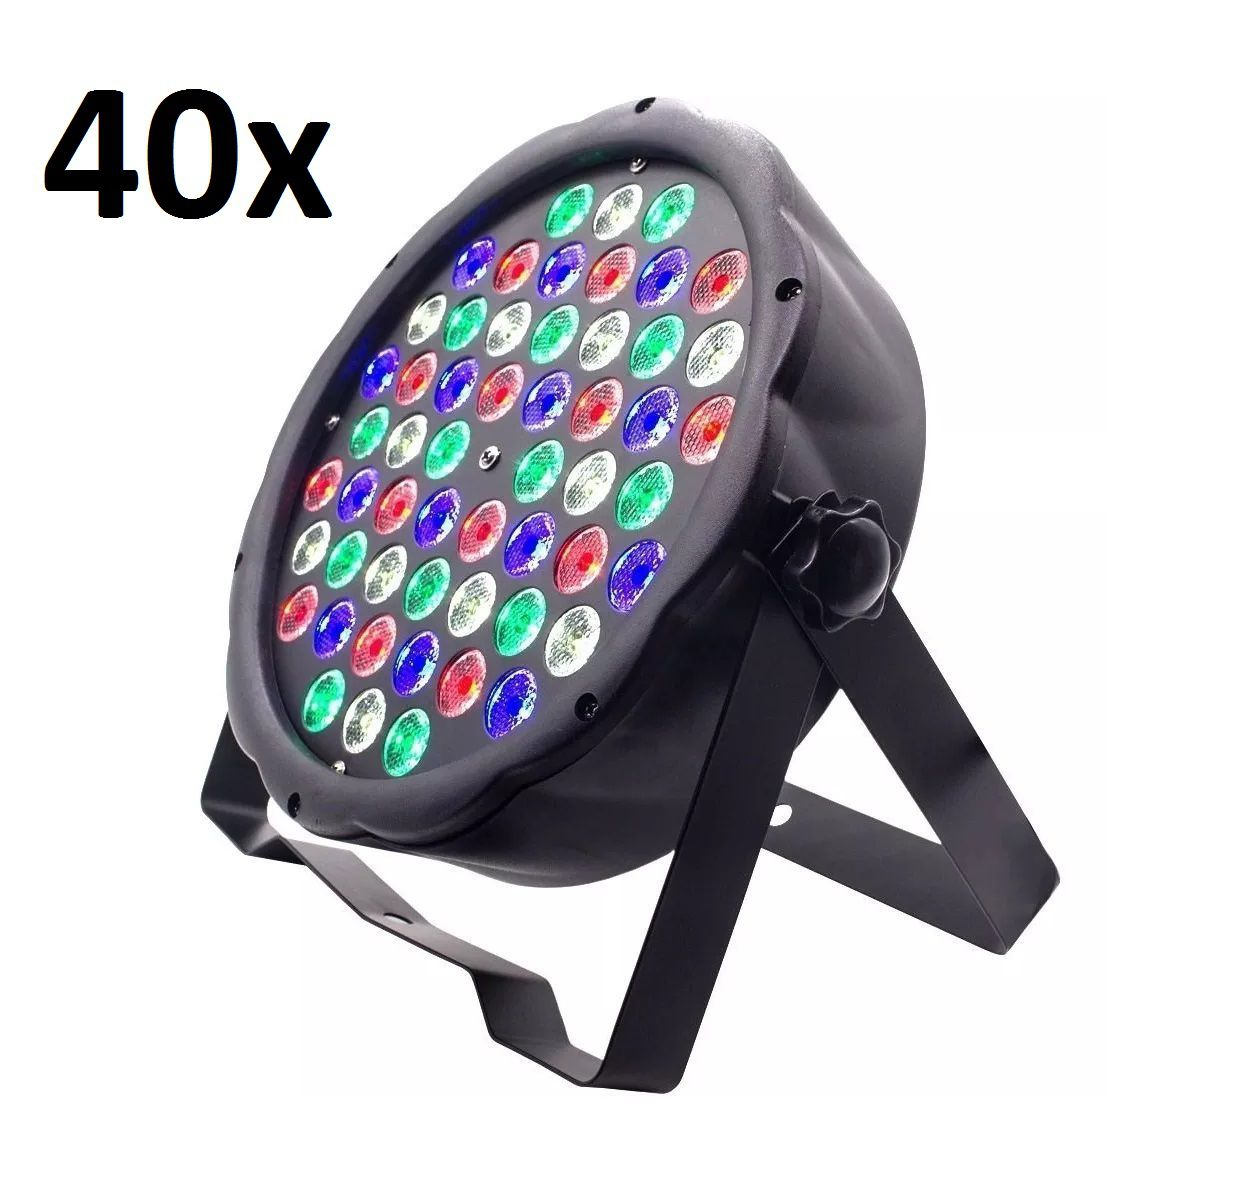 Kit 40x Canhão de Luz Led Par 64 RBGW 54 Leds 3w Strobo Dmx Digital